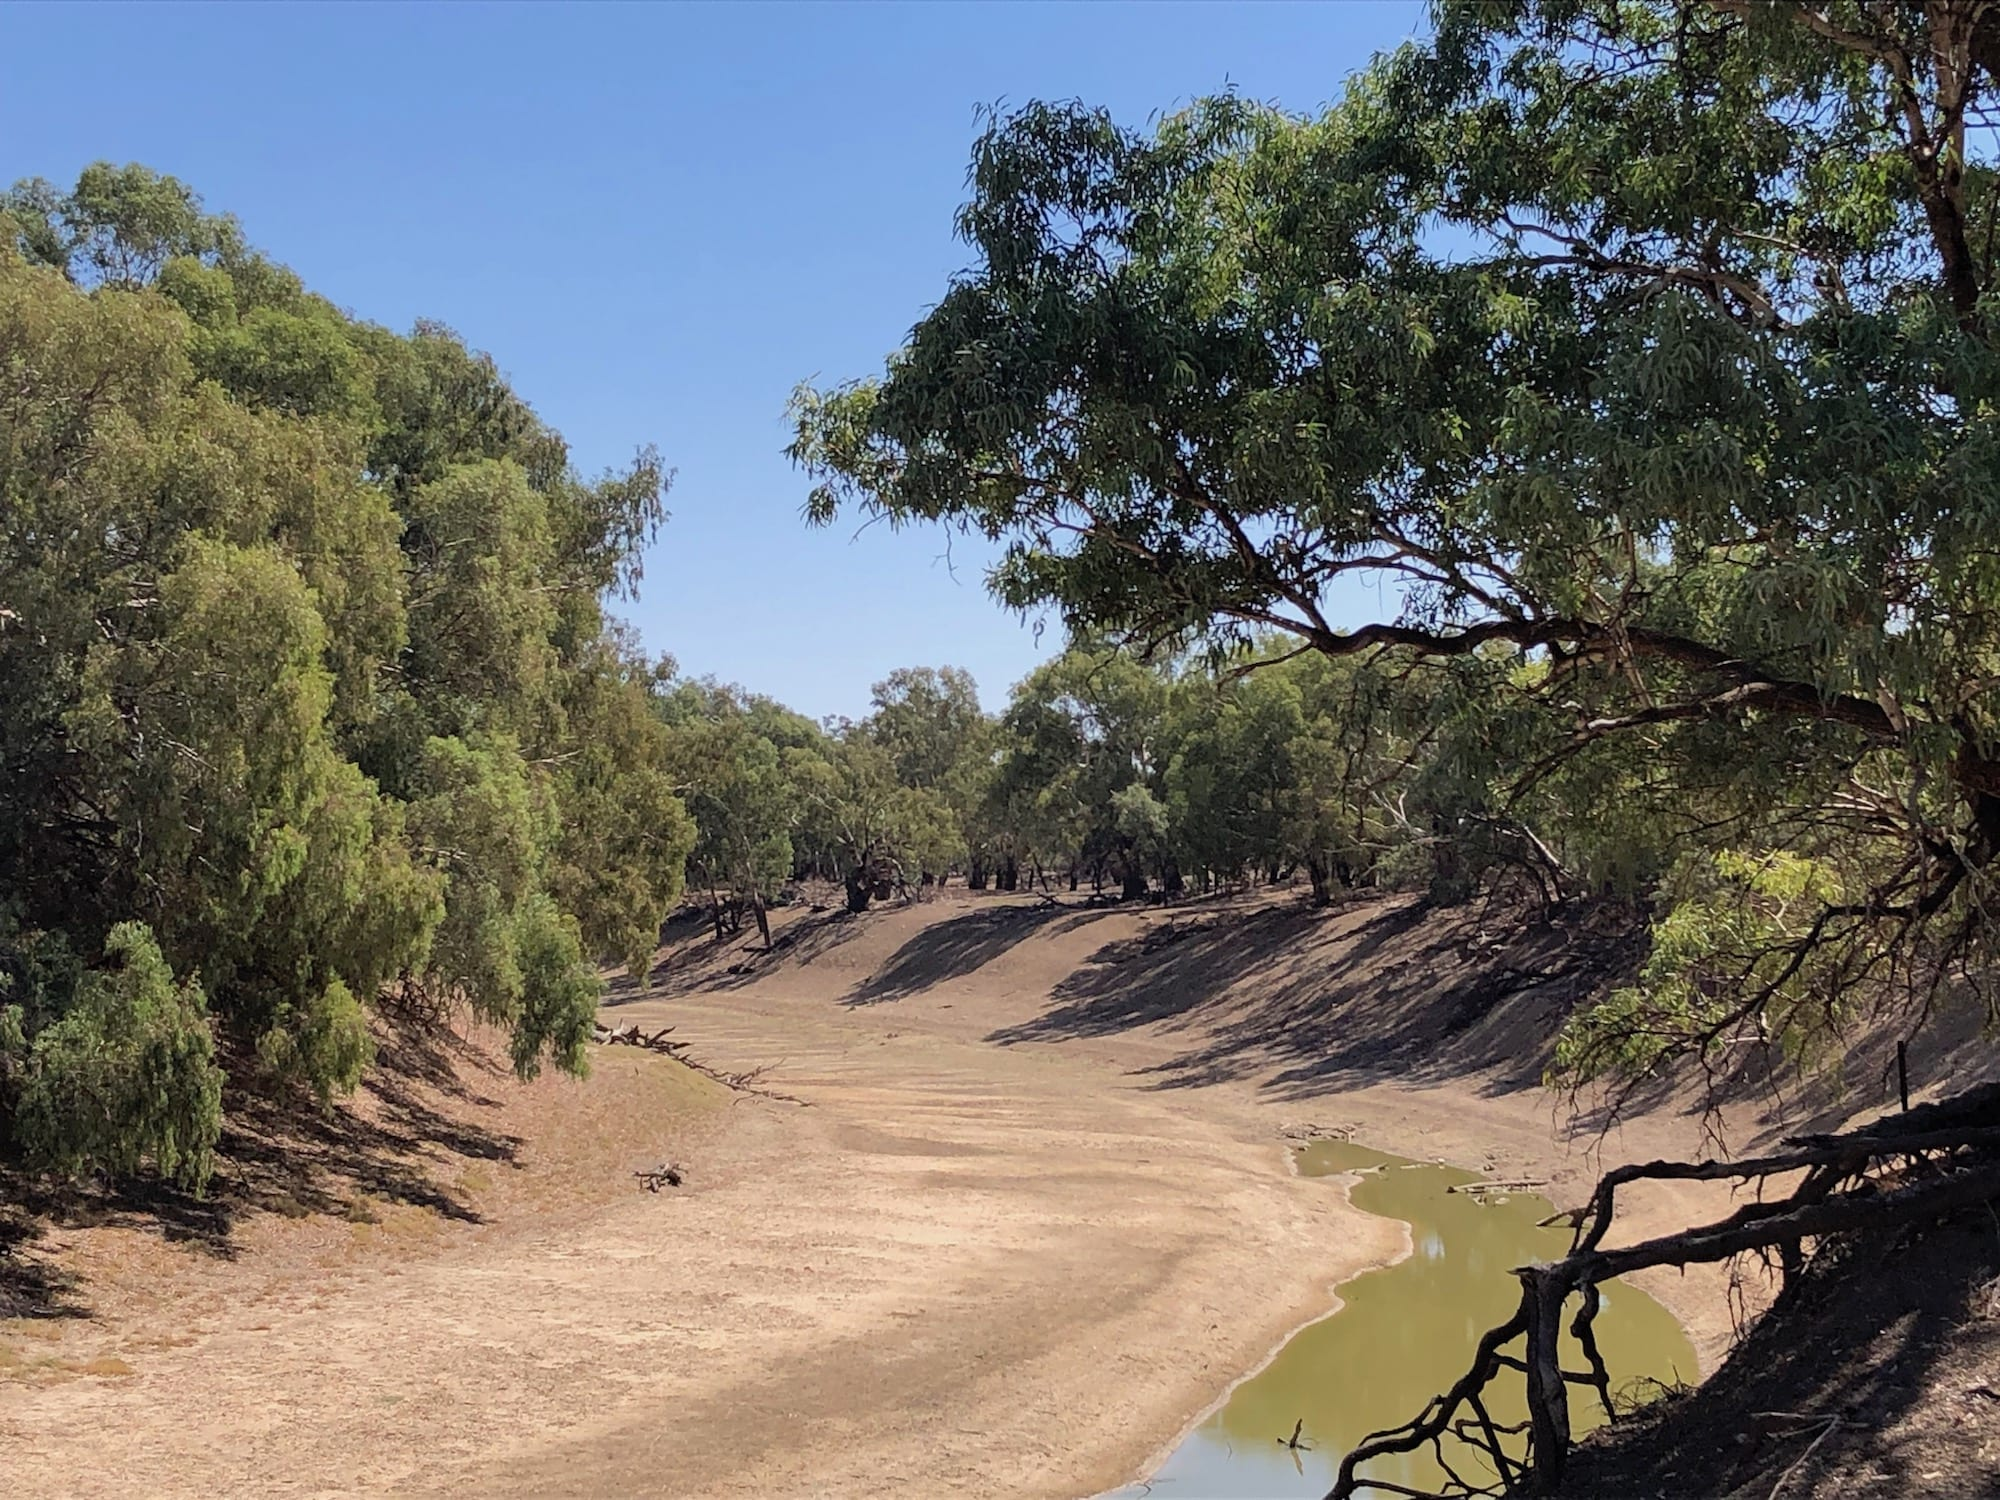 Bone dry Darling River south of Tilpa in April 2018. Murray Darling Basin.